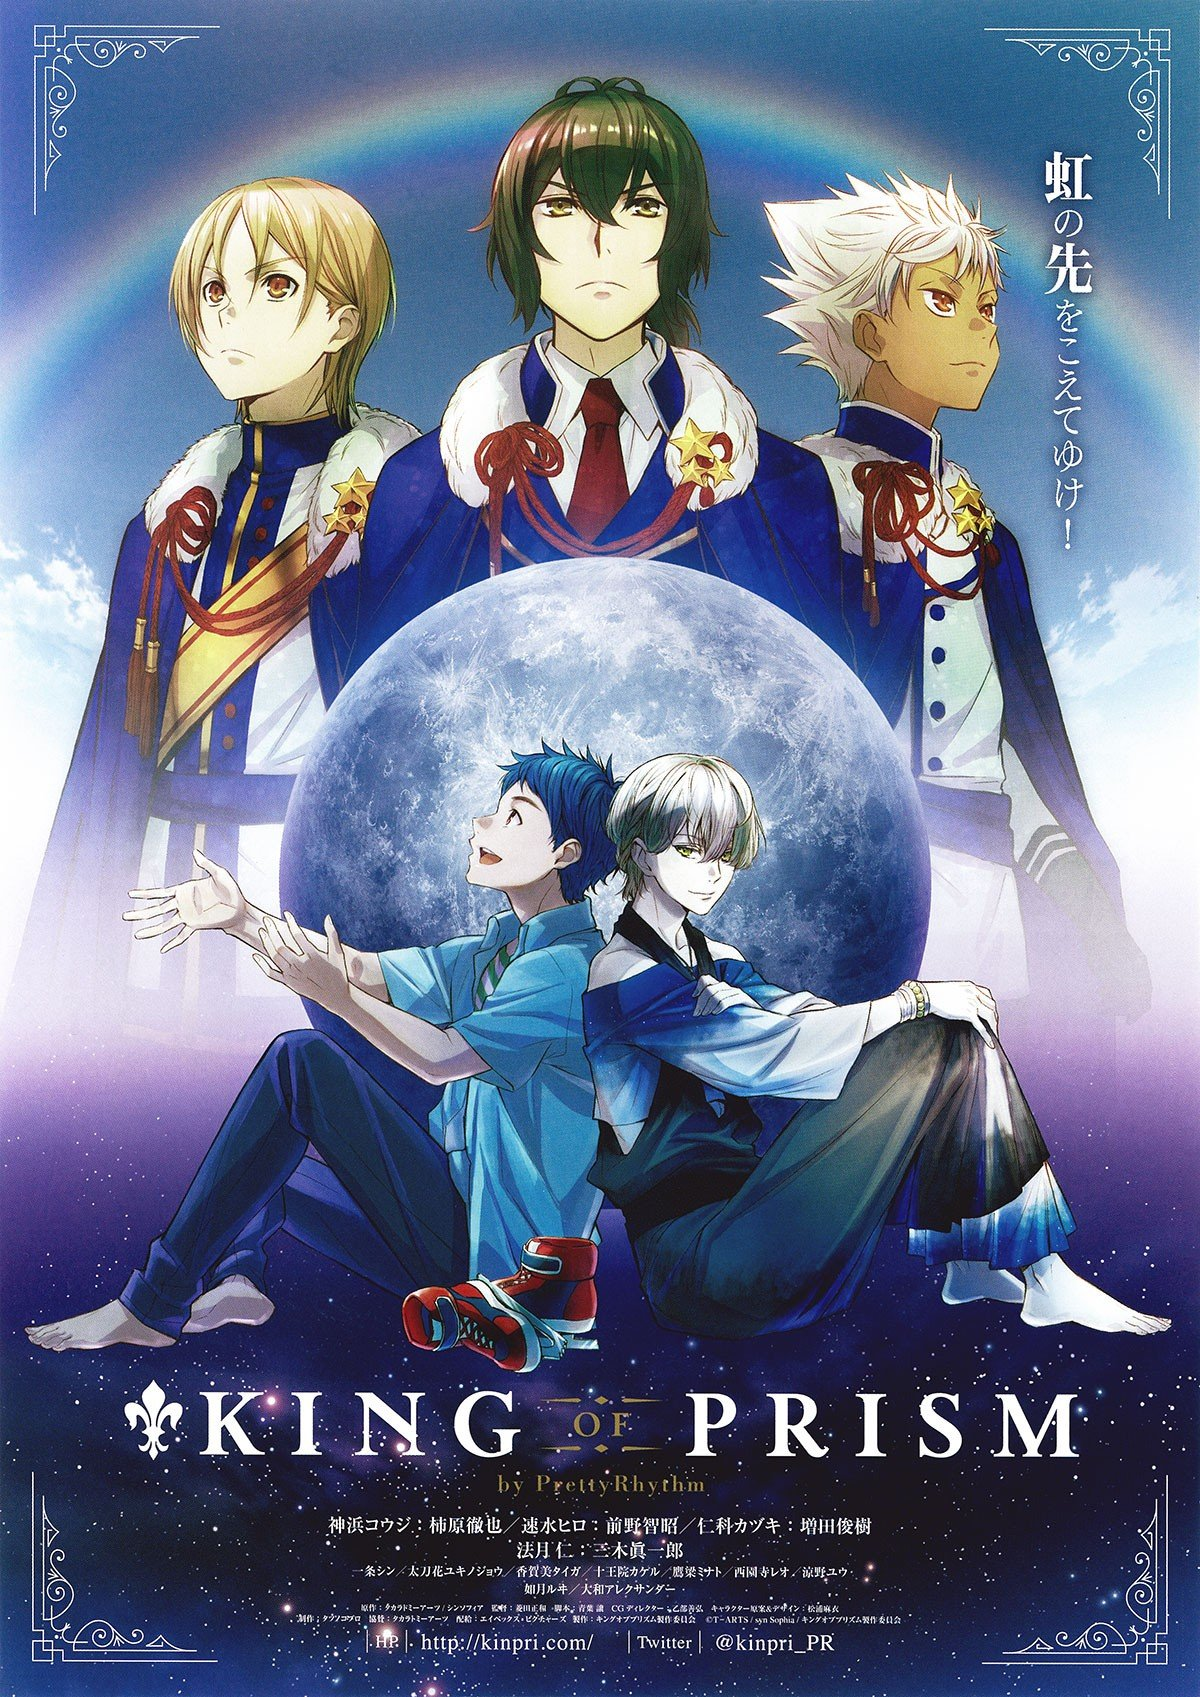 KING OF PRISM by PrettyRhythm 棱镜少男 KING OF PRISM by PrettyRhythm